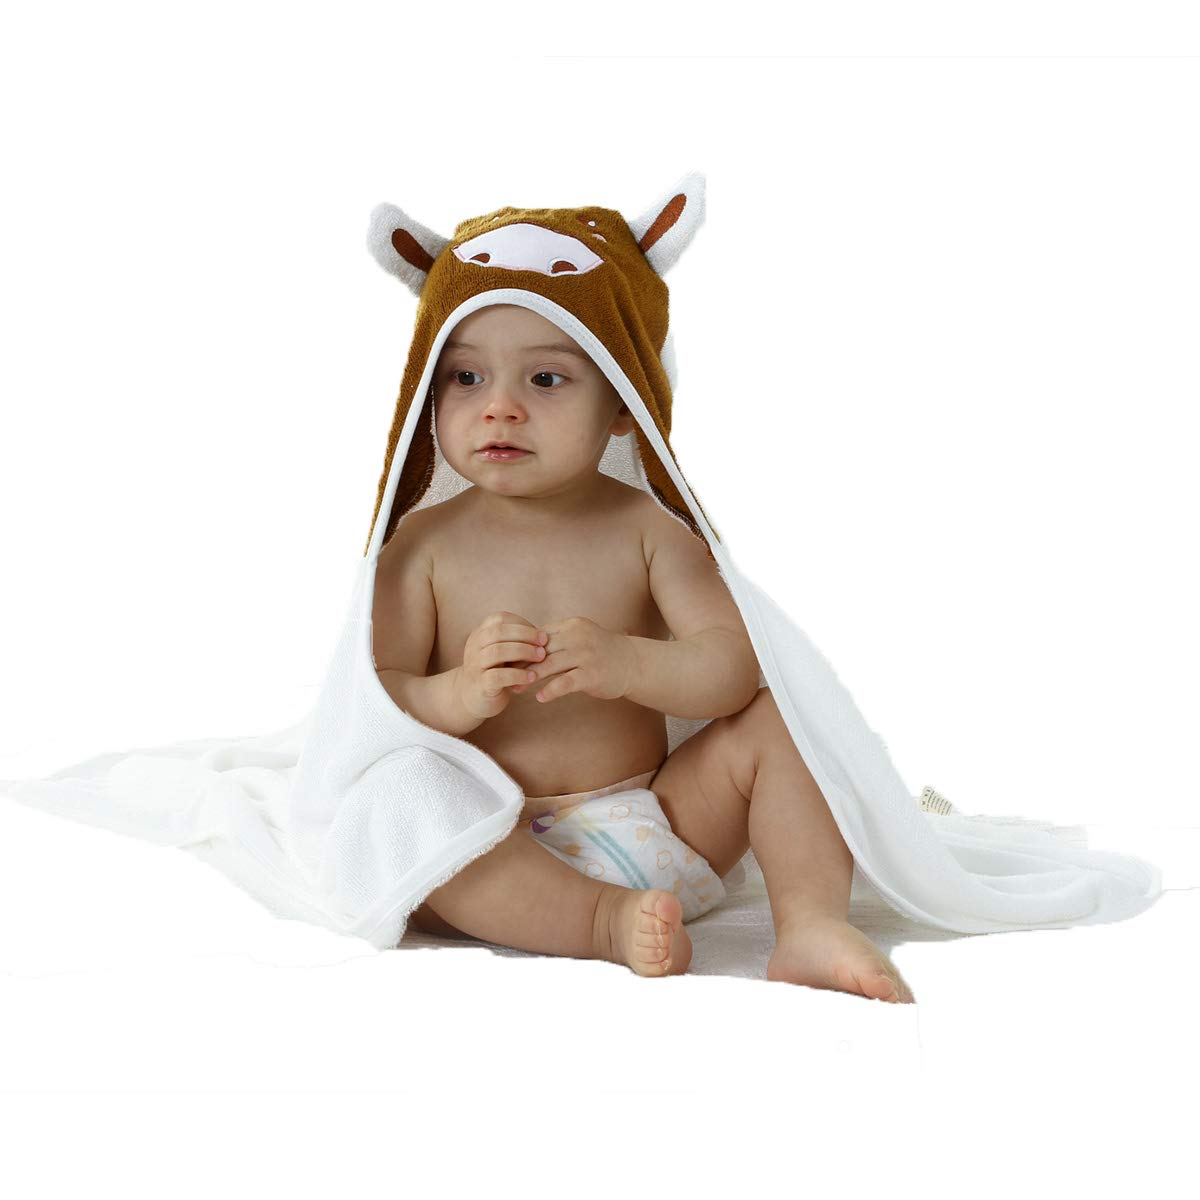 Premium 100% Organic Bamboo Baby Hooded Towel with Washcloth Gift Included Ultrasoft - Generously Sized - Super Absorbent - Antibacterial - Hypoallergenic by LOU&MAX